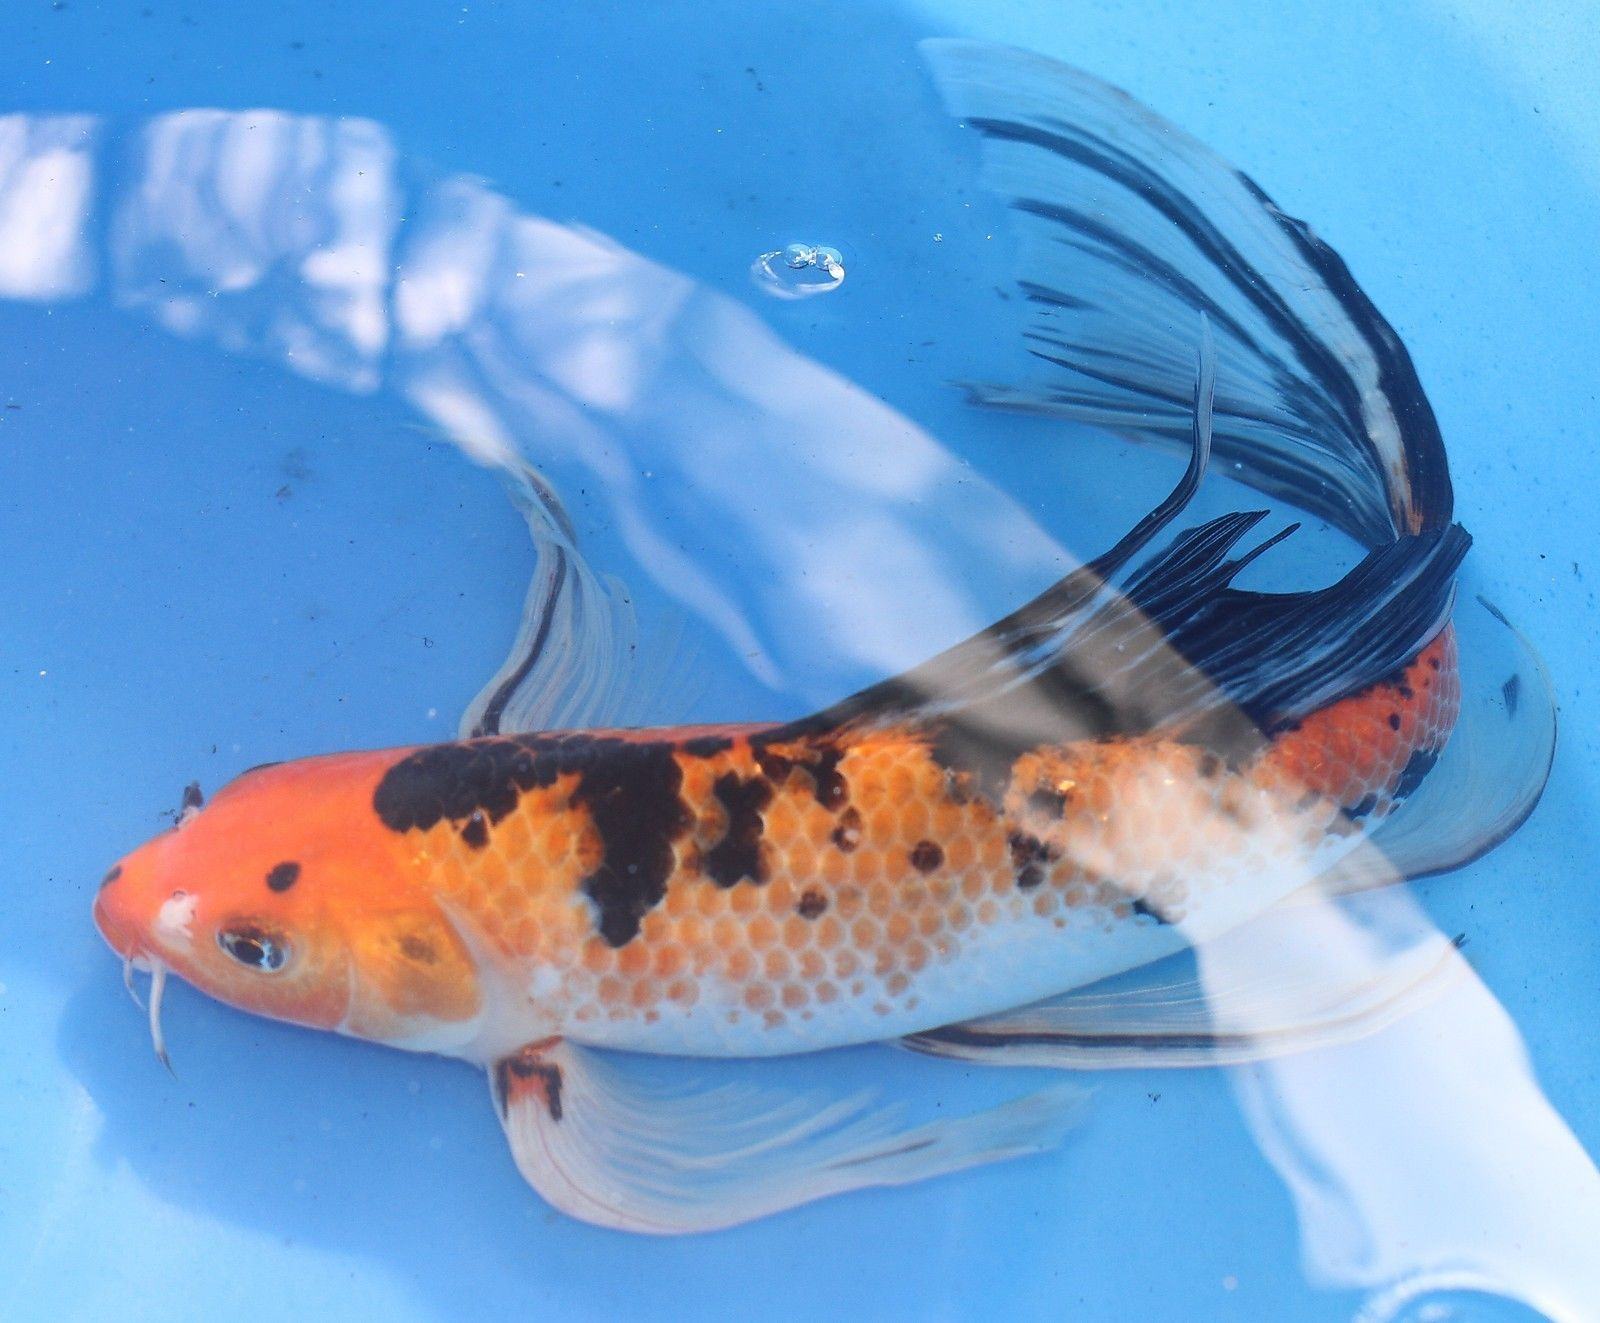 11 inch hi utsuri butterfly fin live koi fish fko 55 for Koi fish tail